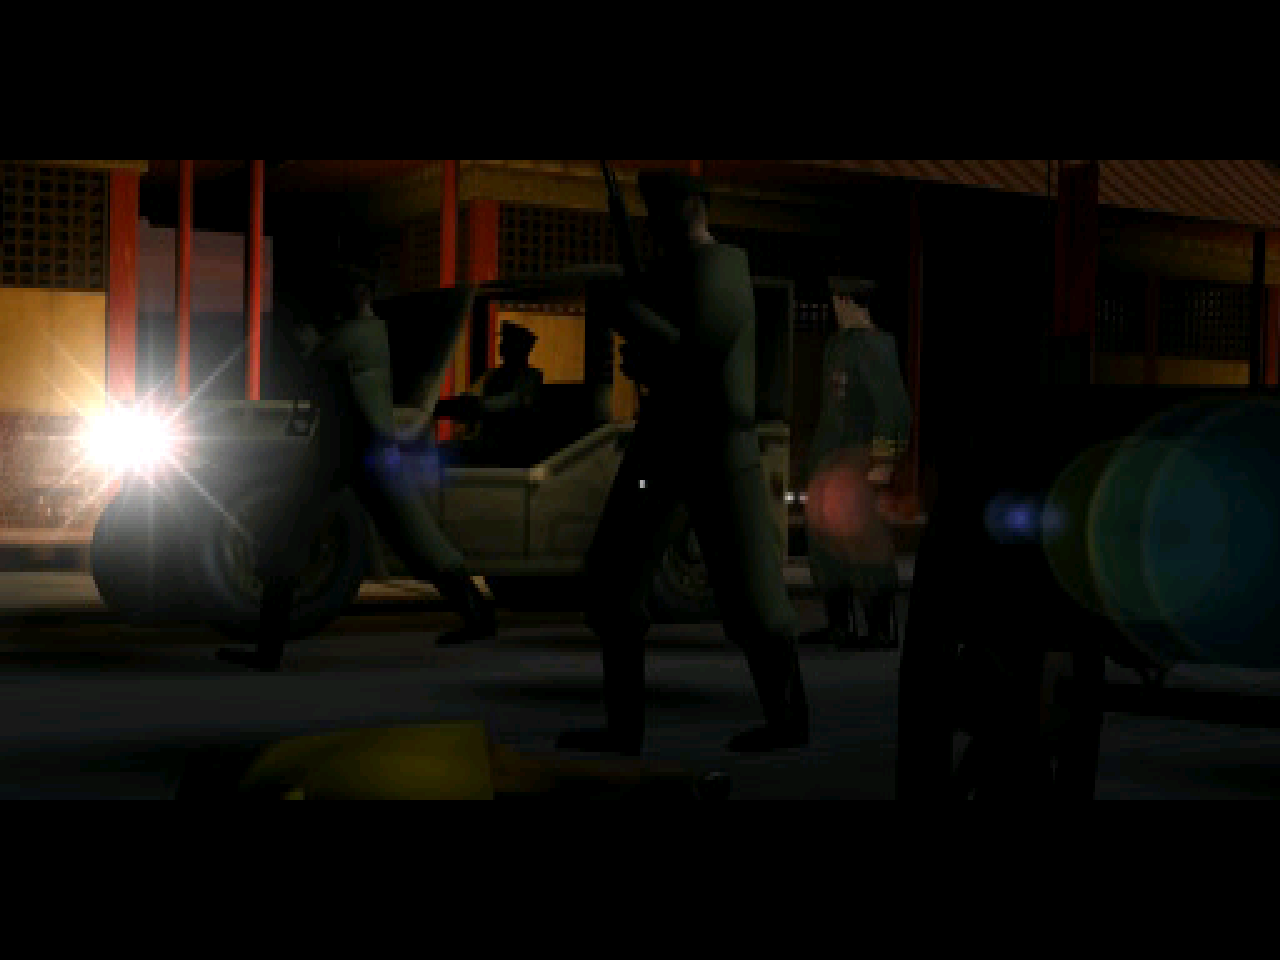 https://s3.eu-west-3.amazonaws.com/games.anthony-dessalles.com/Syphon Filter 2 PS1 2020 - Screenshots/Syphon Filter 2 Disc 1-201126-173521.png